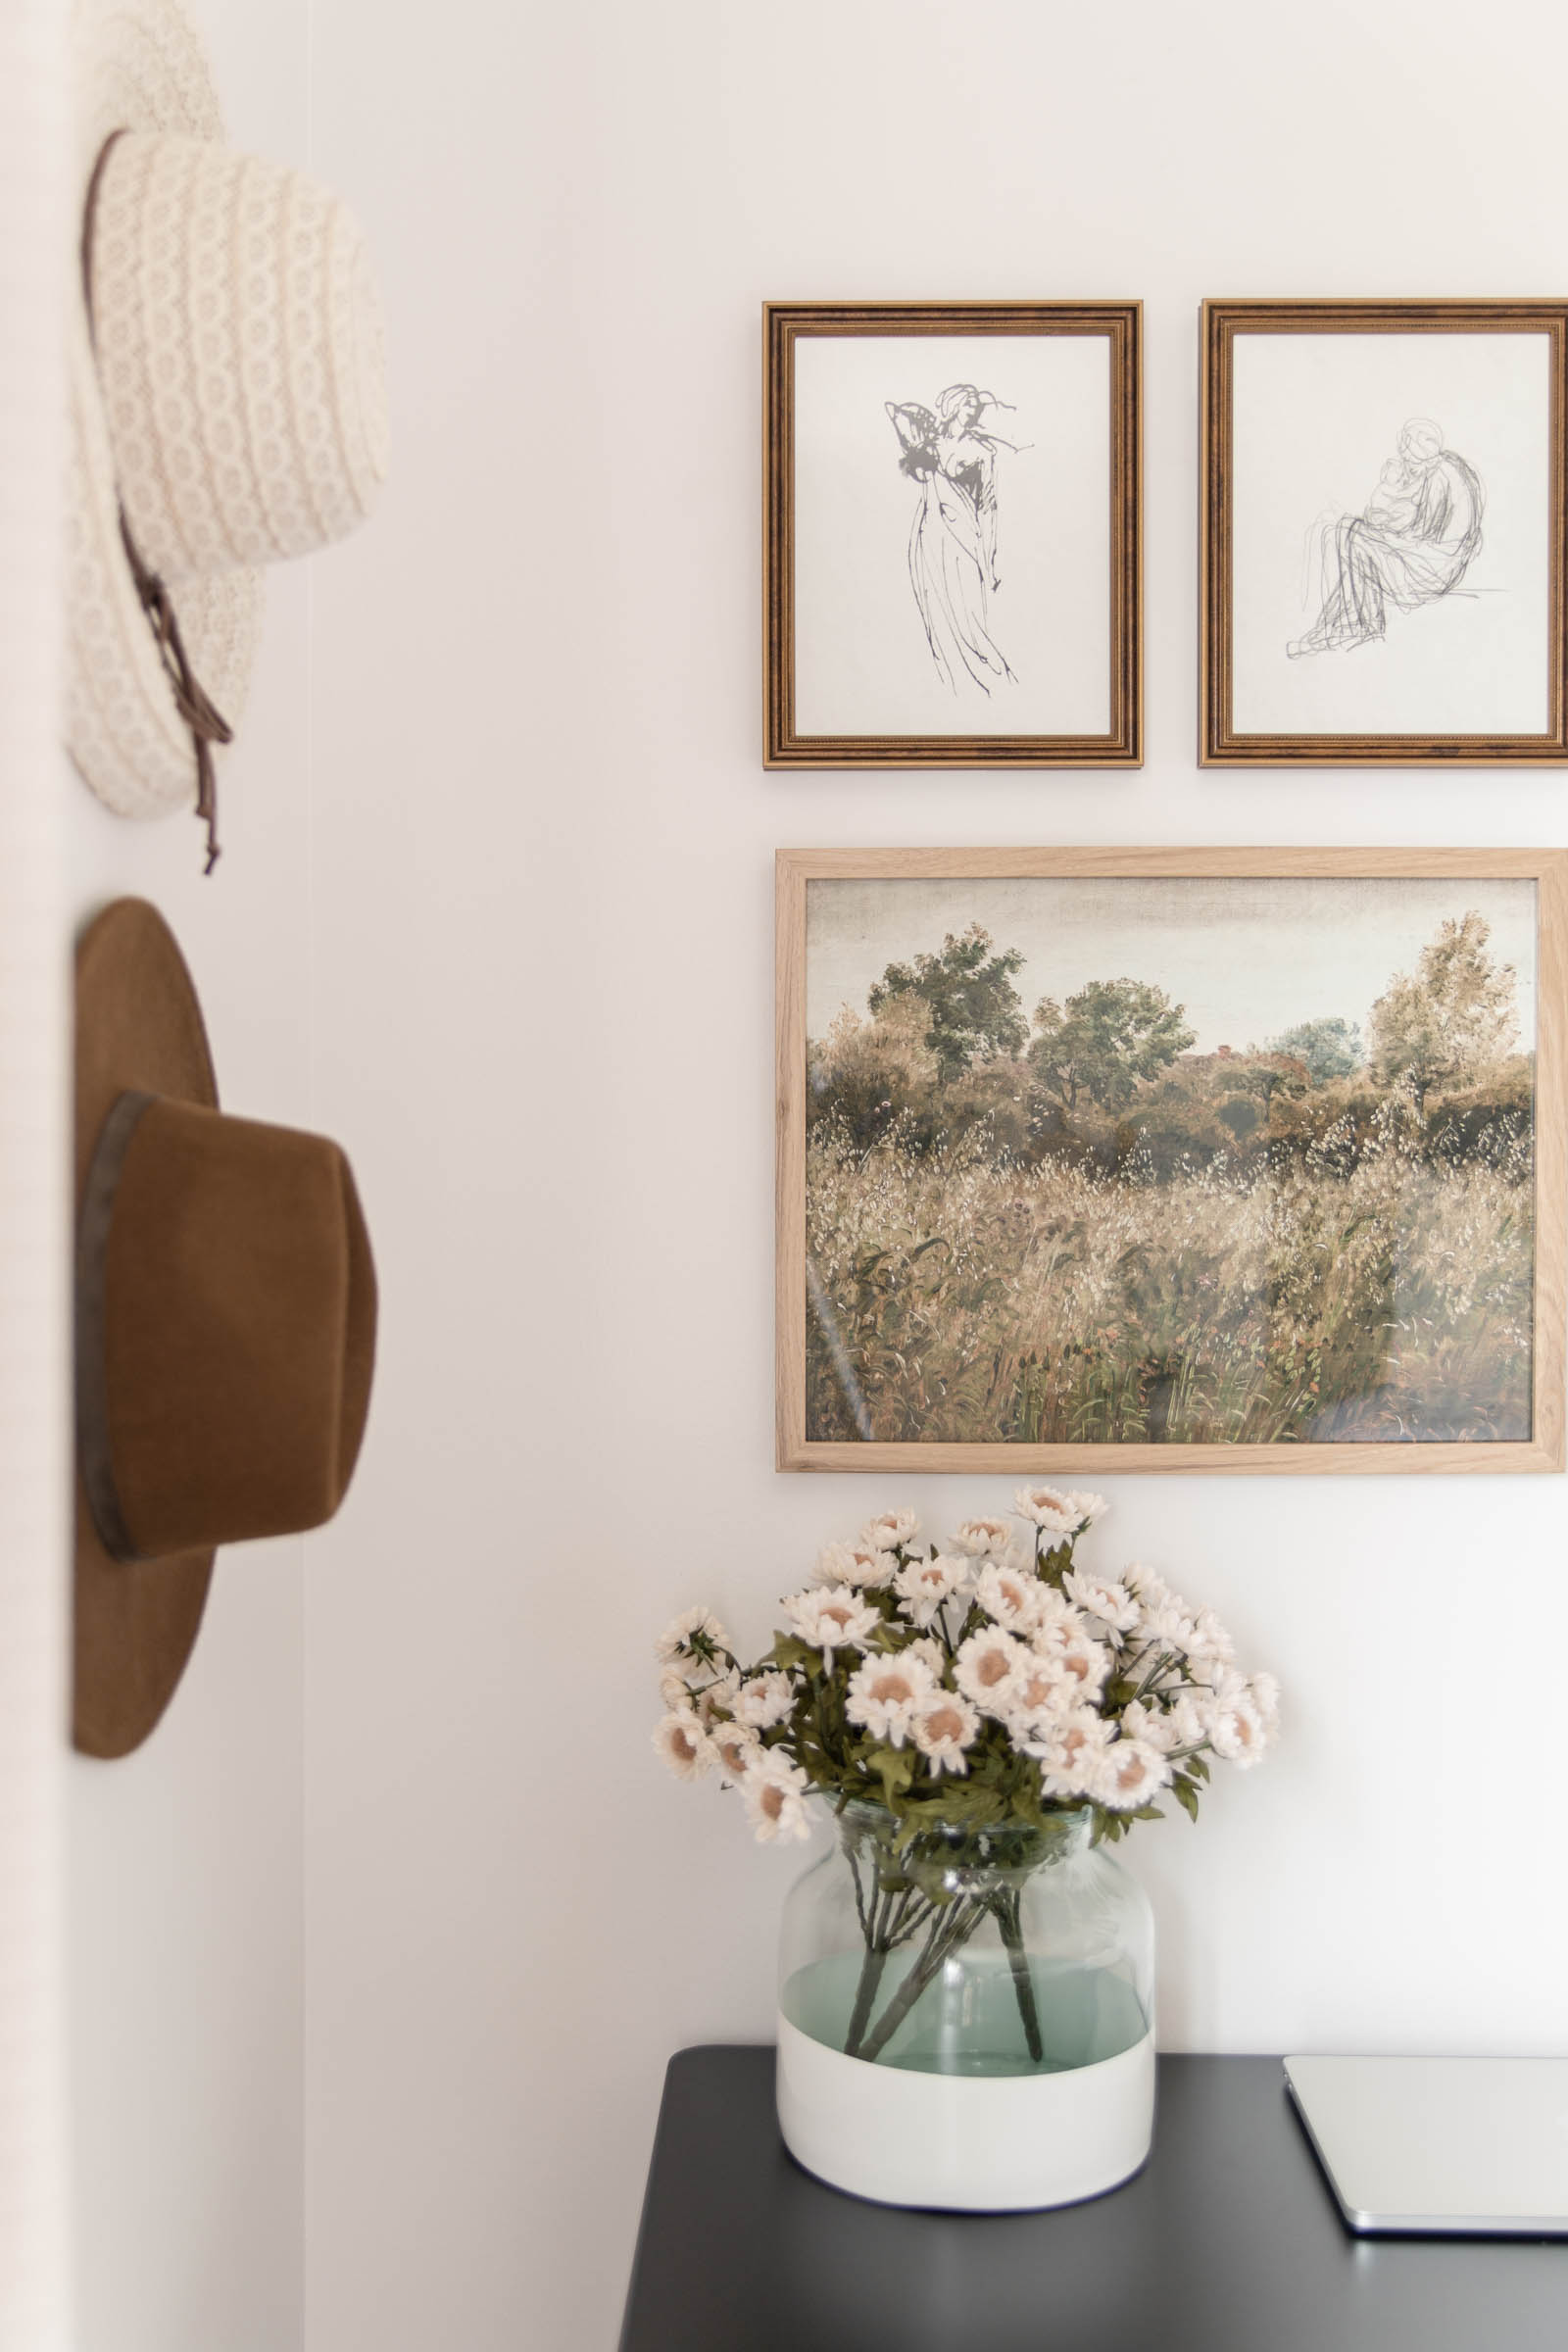 Bedroom Office Nook (and Vintage Art Gallery Wall) | small office space, hats hanging on wall, poetto vase, collected antique art gallery wall